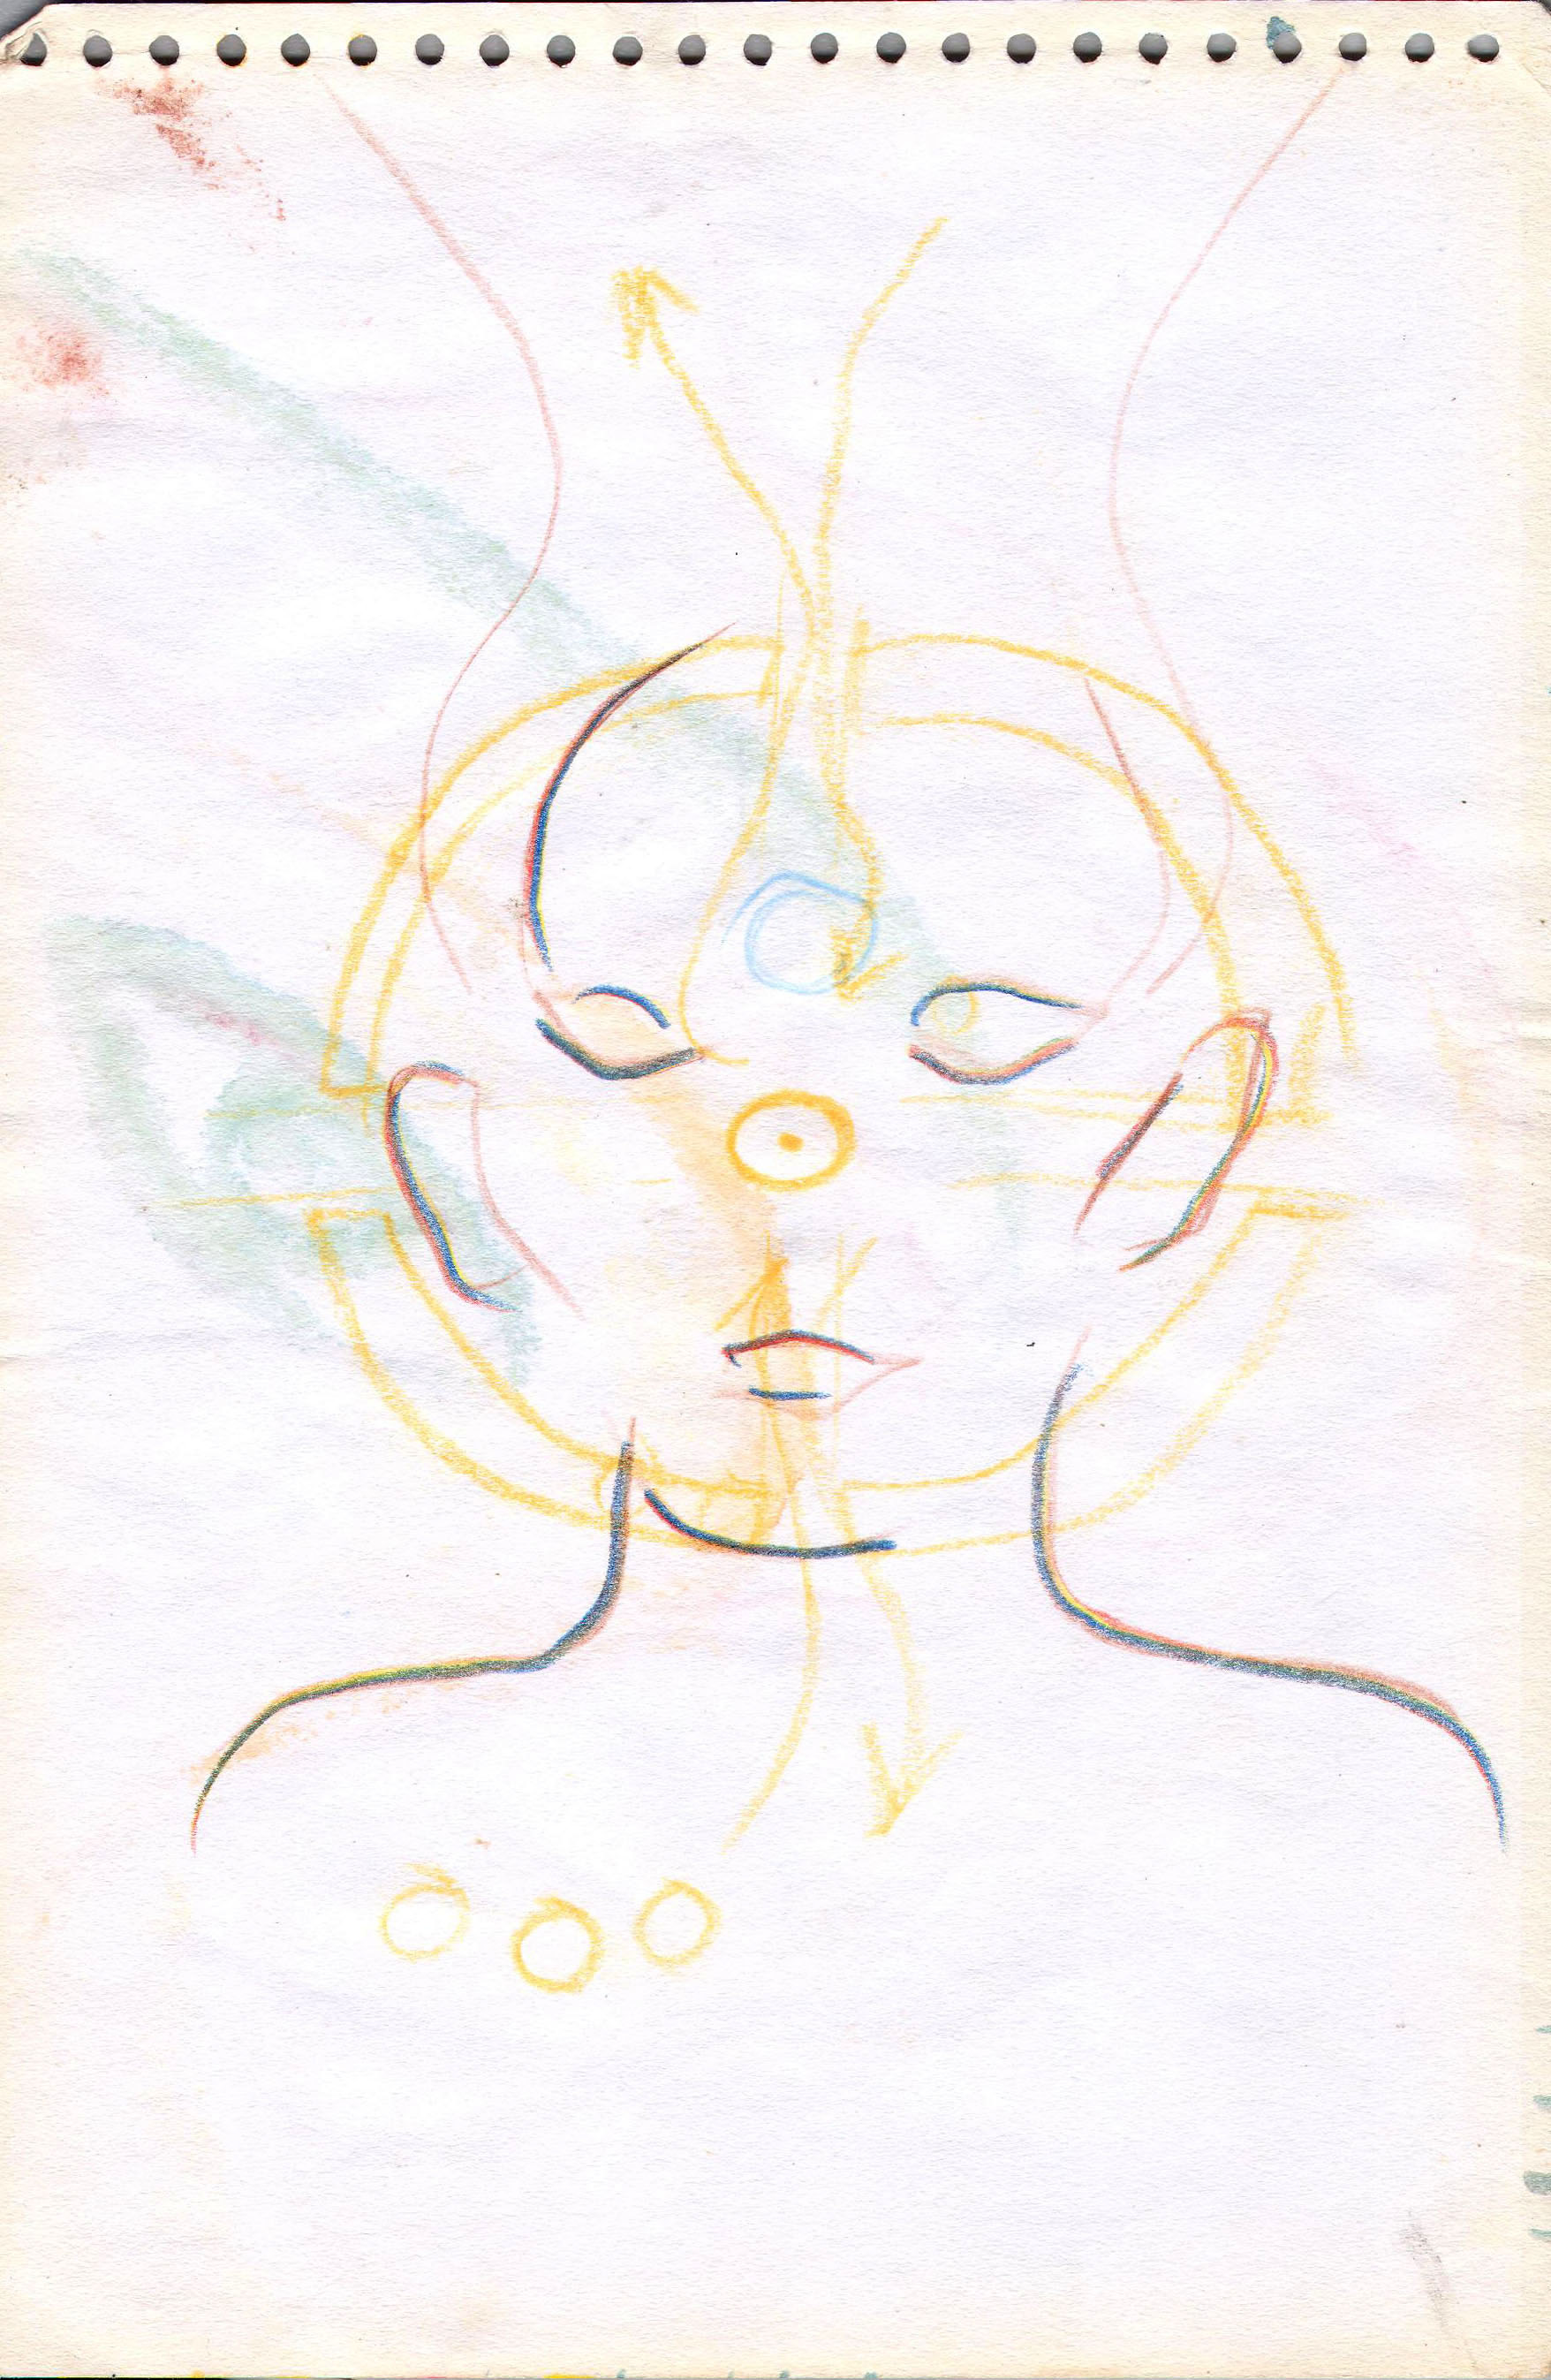 Sketches from the source by a Philippine shaman Bong Delatorre 30